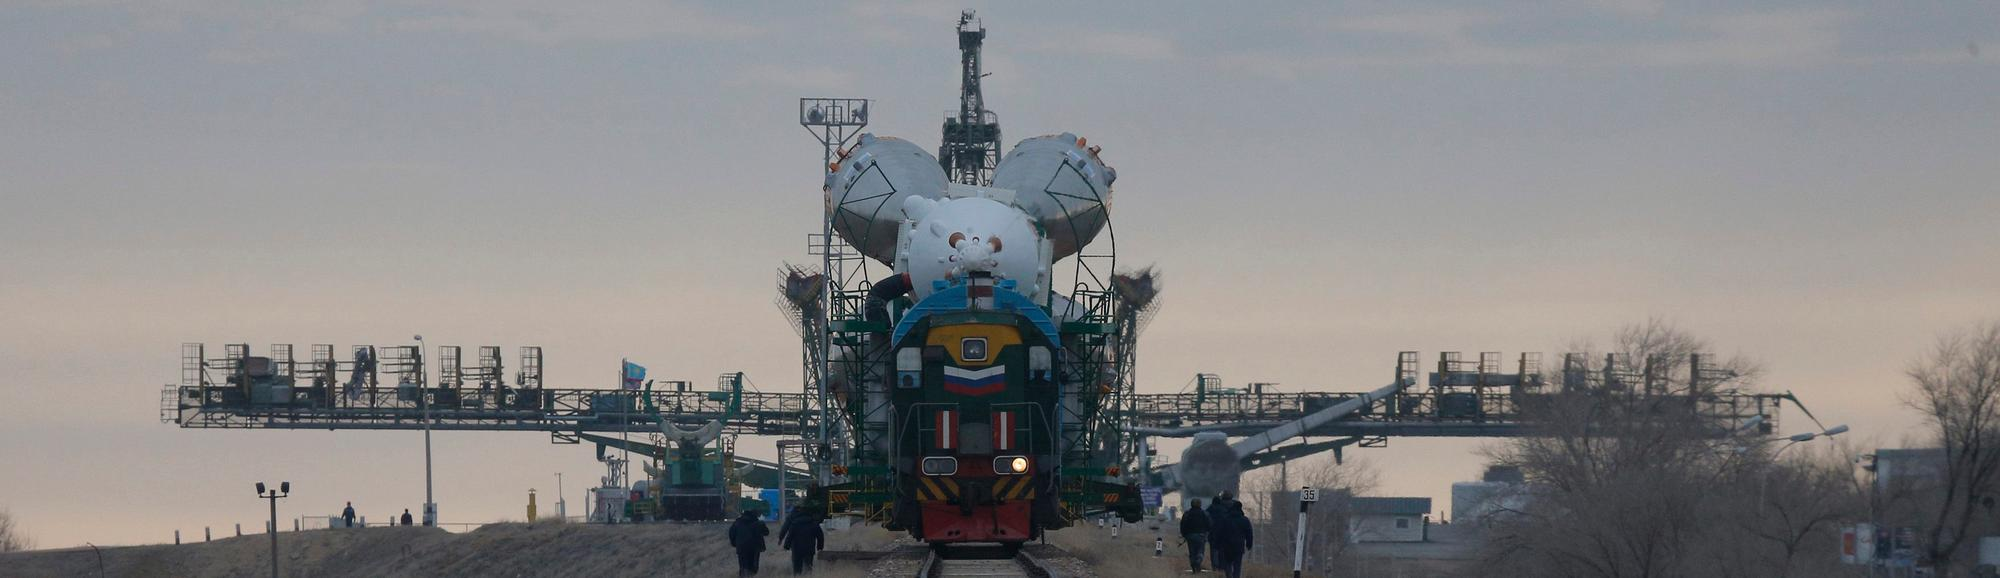 NASA's Astronauts Could Be Stranded in Space if Russia Cancels Their Ride Home